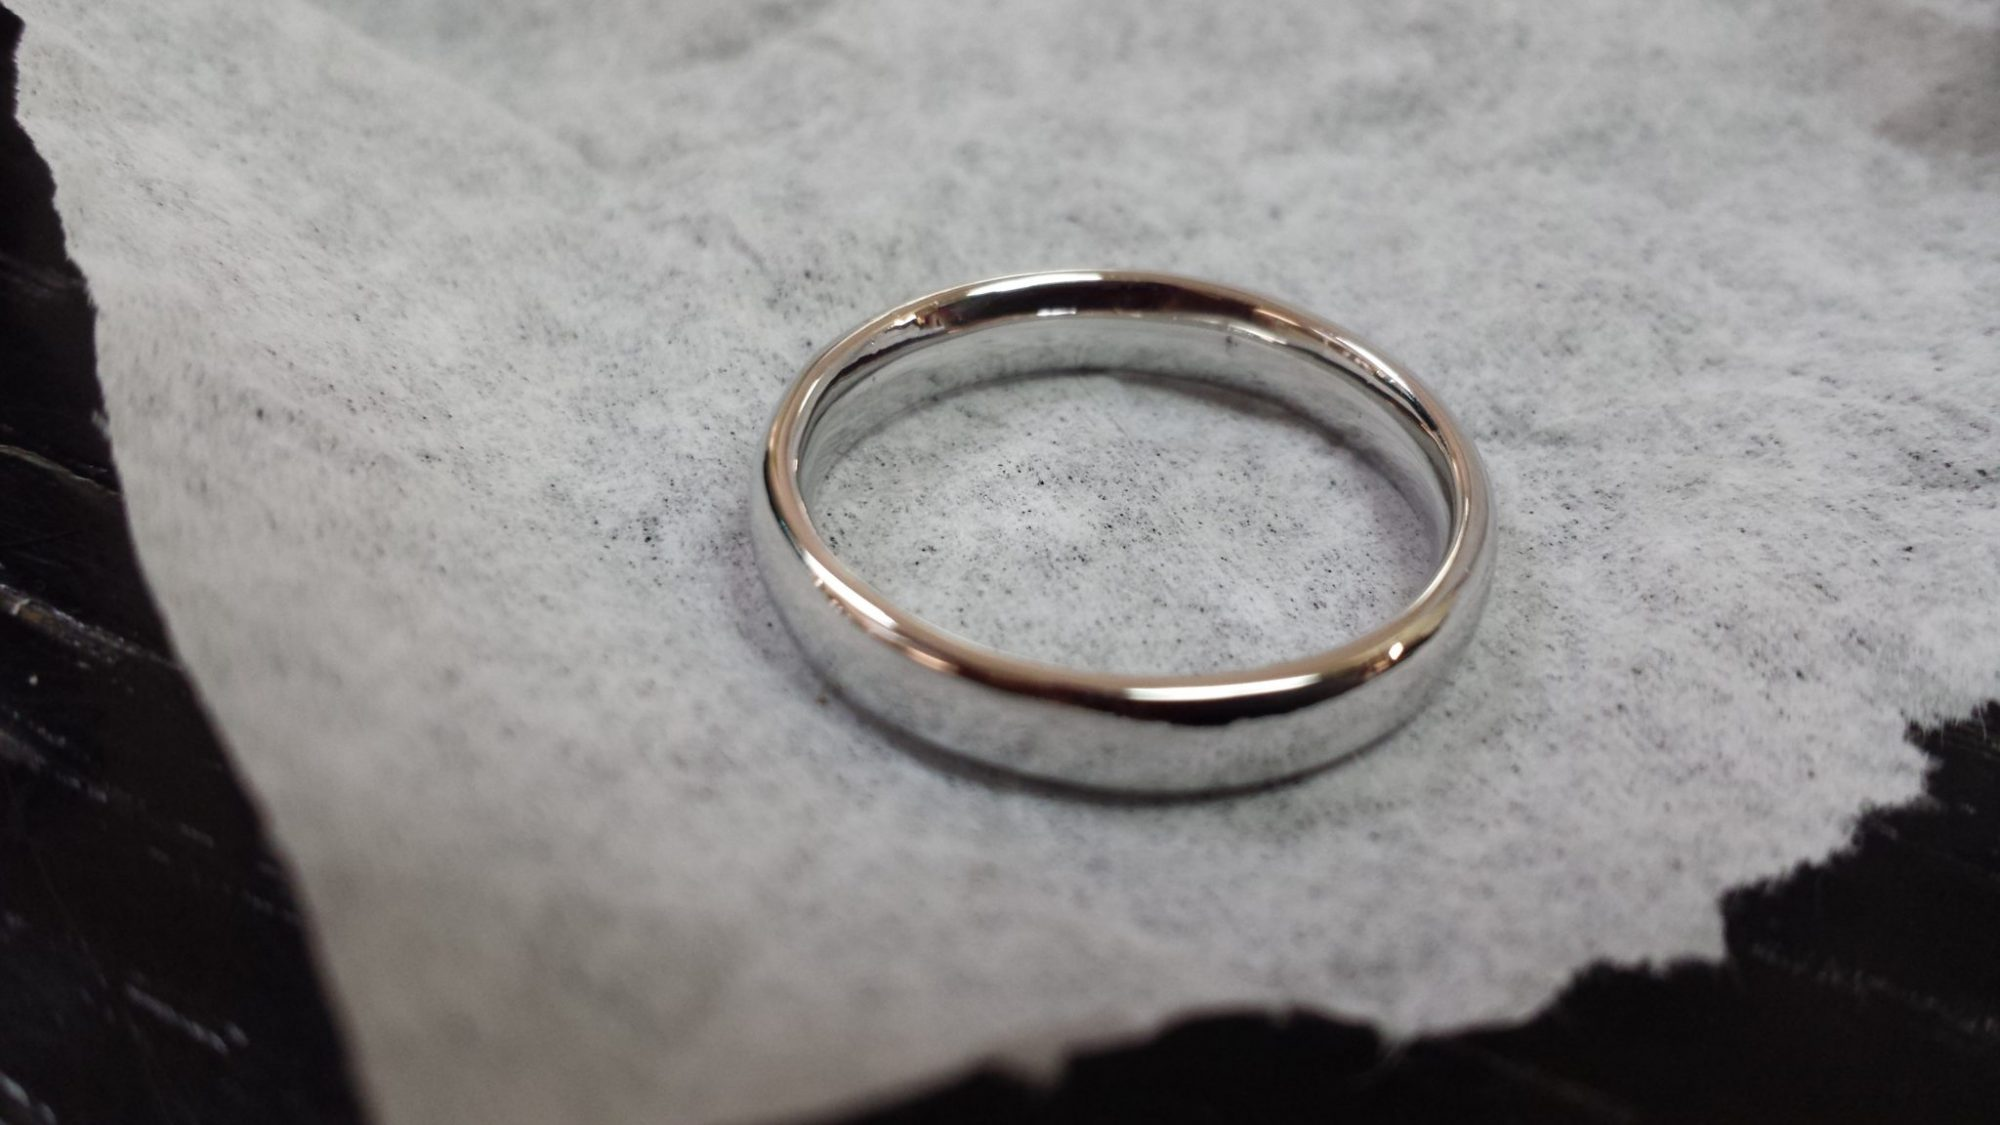 White gold wedding band after garbage disposal accident and repair